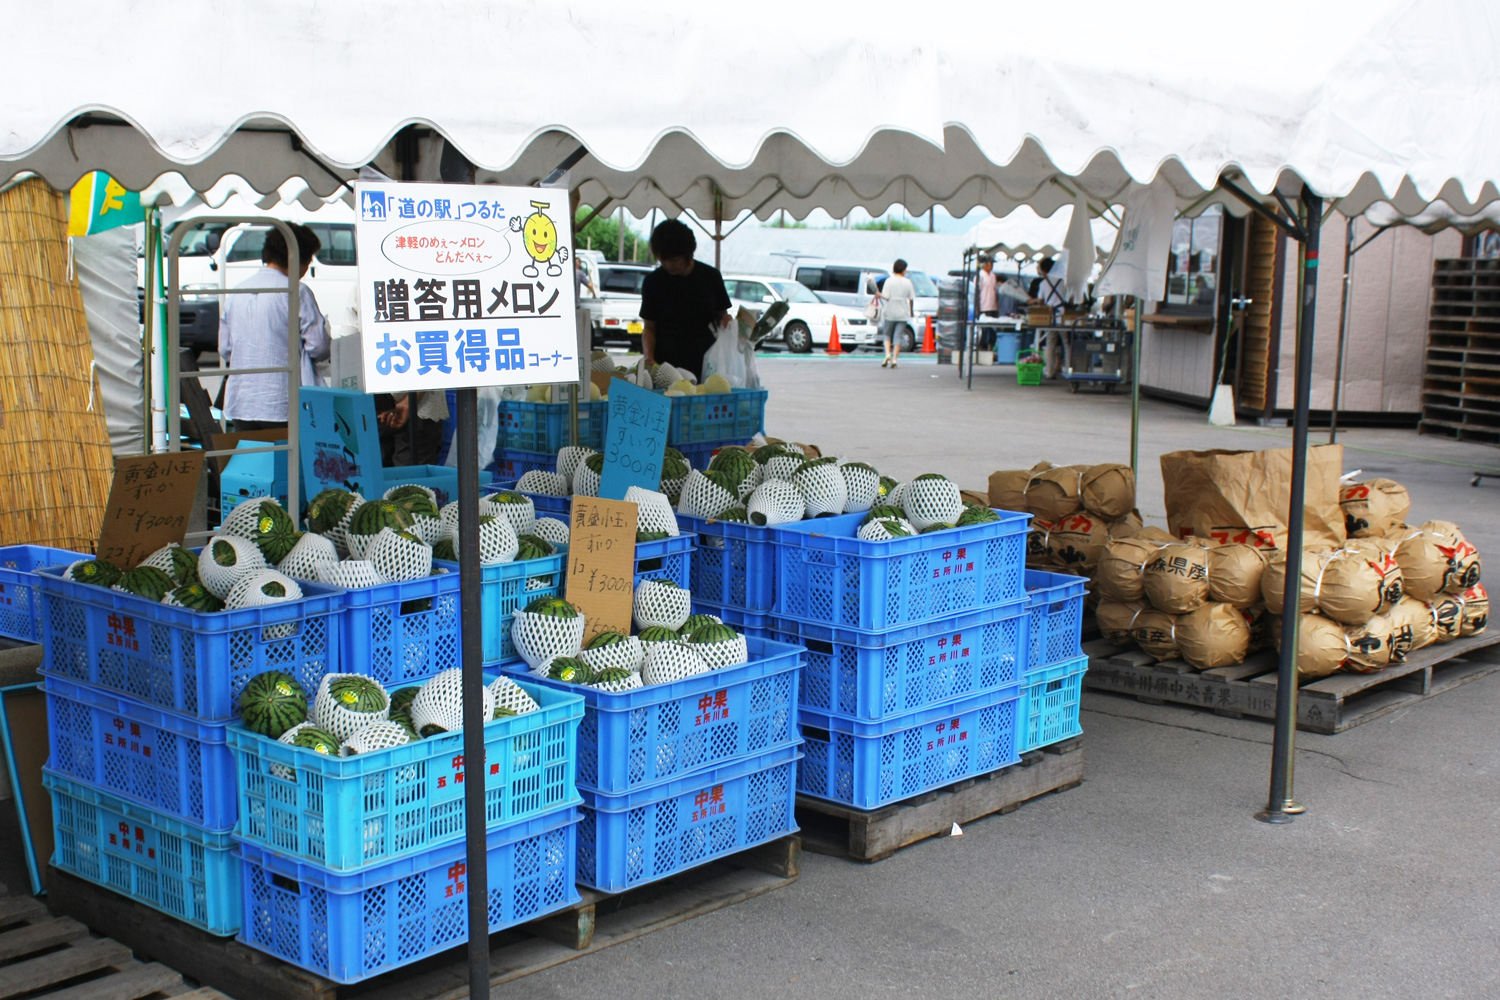 Sell local produce specialty products such as Michi no Eki (Roadside station): Crane Village Aruja